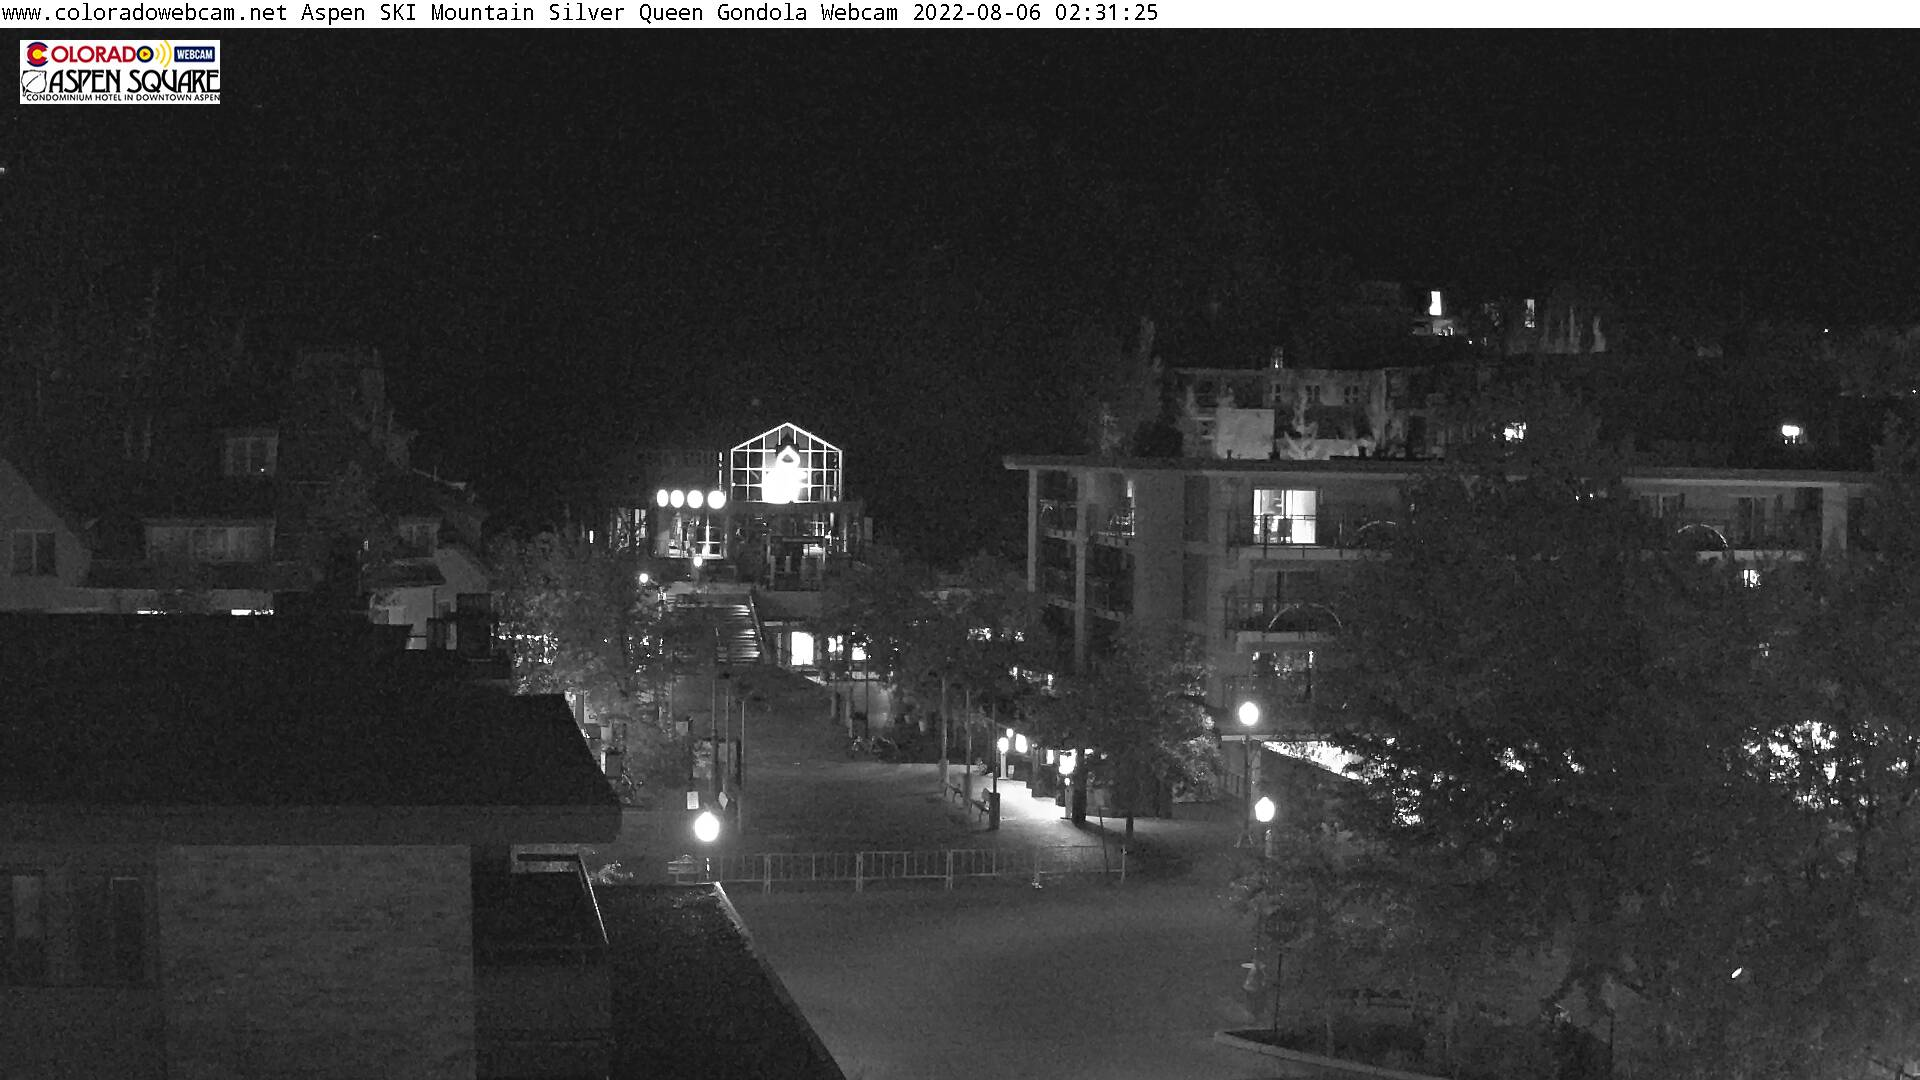 Live Aspen Colorado Gondola from www.coloradowebcam.net